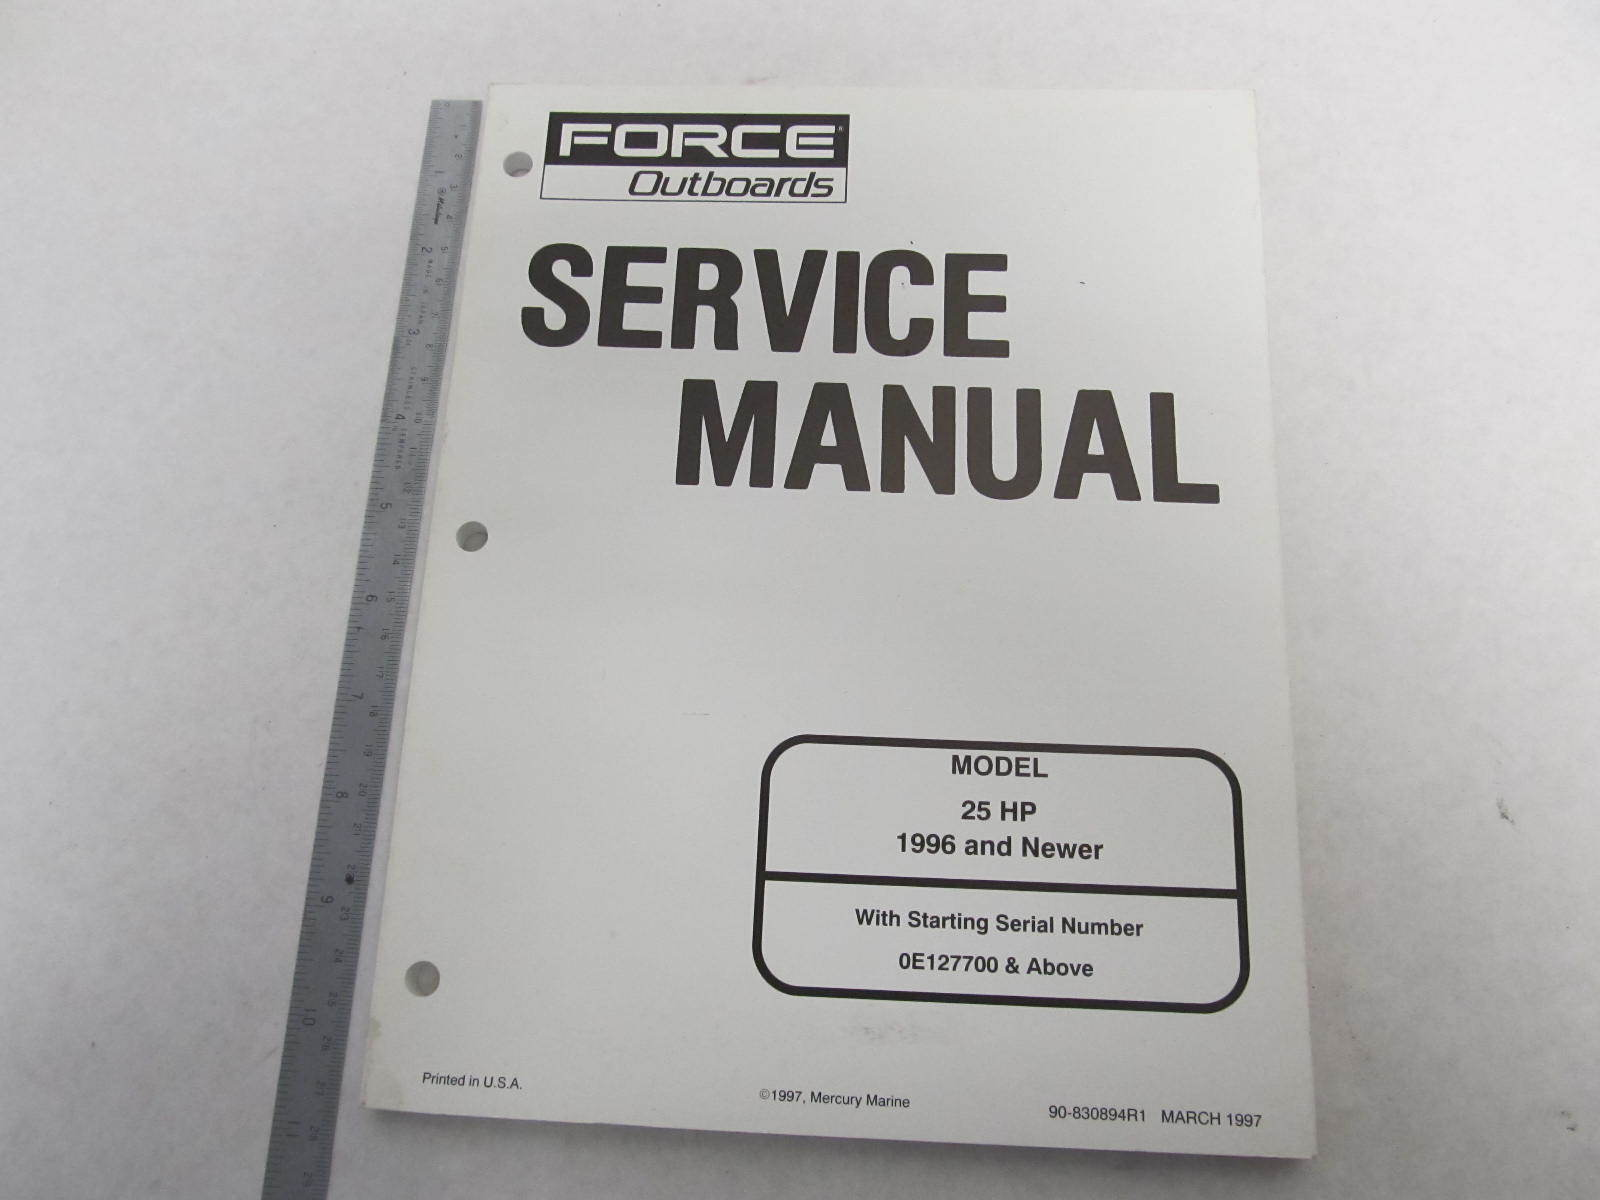 1996 mercury force outboard service manual 25 hp green bay rh greenbayprop  com 25 HP Mercury Outboard Repair 25 HP Mercury Outboard Parts